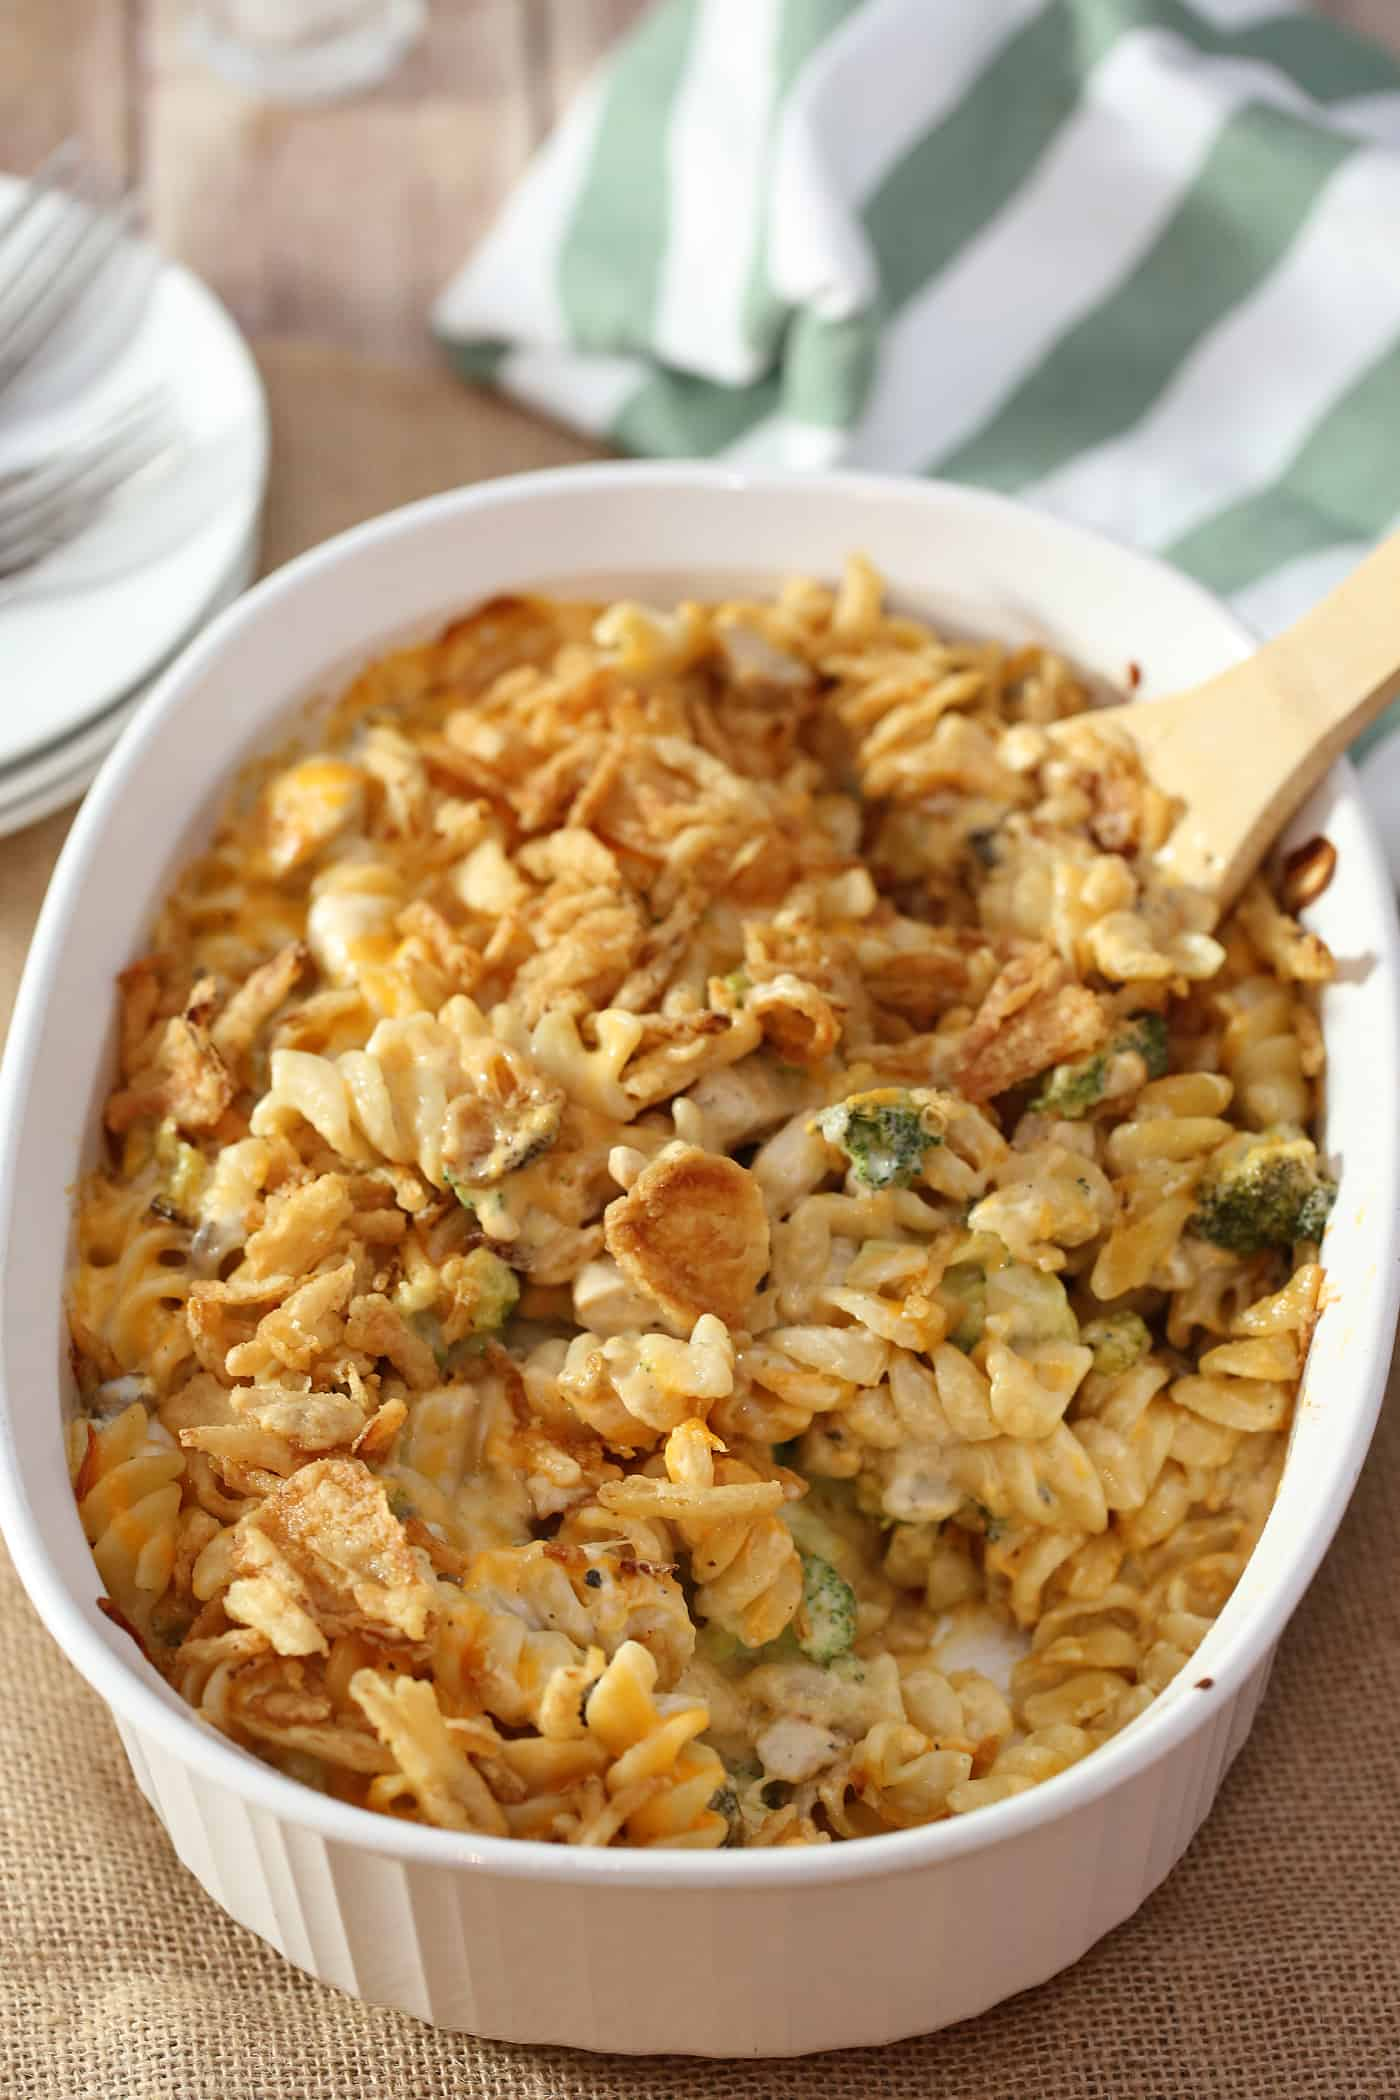 chicken noodle casserole in a dish with wooden spoon